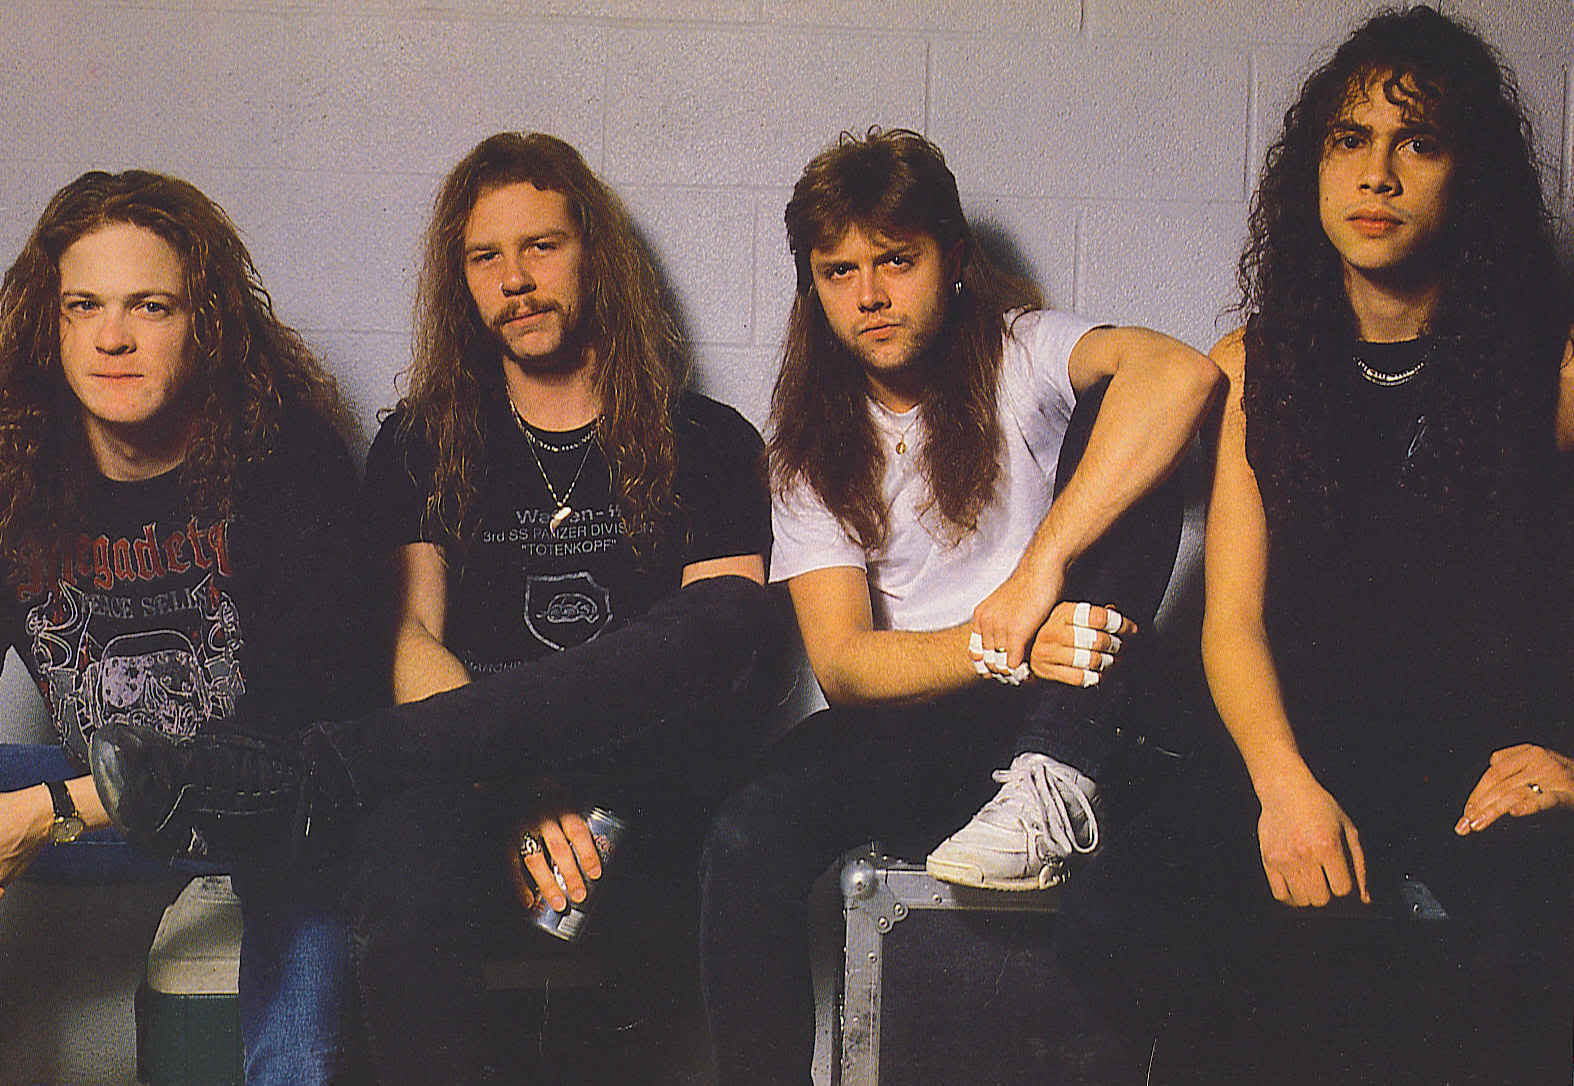 an analysis of the 1980s rock band metallica and their changing image throughout the years Meanwhile, in the absence of new yes albums, other bands began trying to capitalize on the yes sound by creating their own versions of such: the most notable of these were starcastle, a progressive rock band signed by epic records, who made their recording debut in 1976 with a self-titled album that could have been another incarnation of yes.